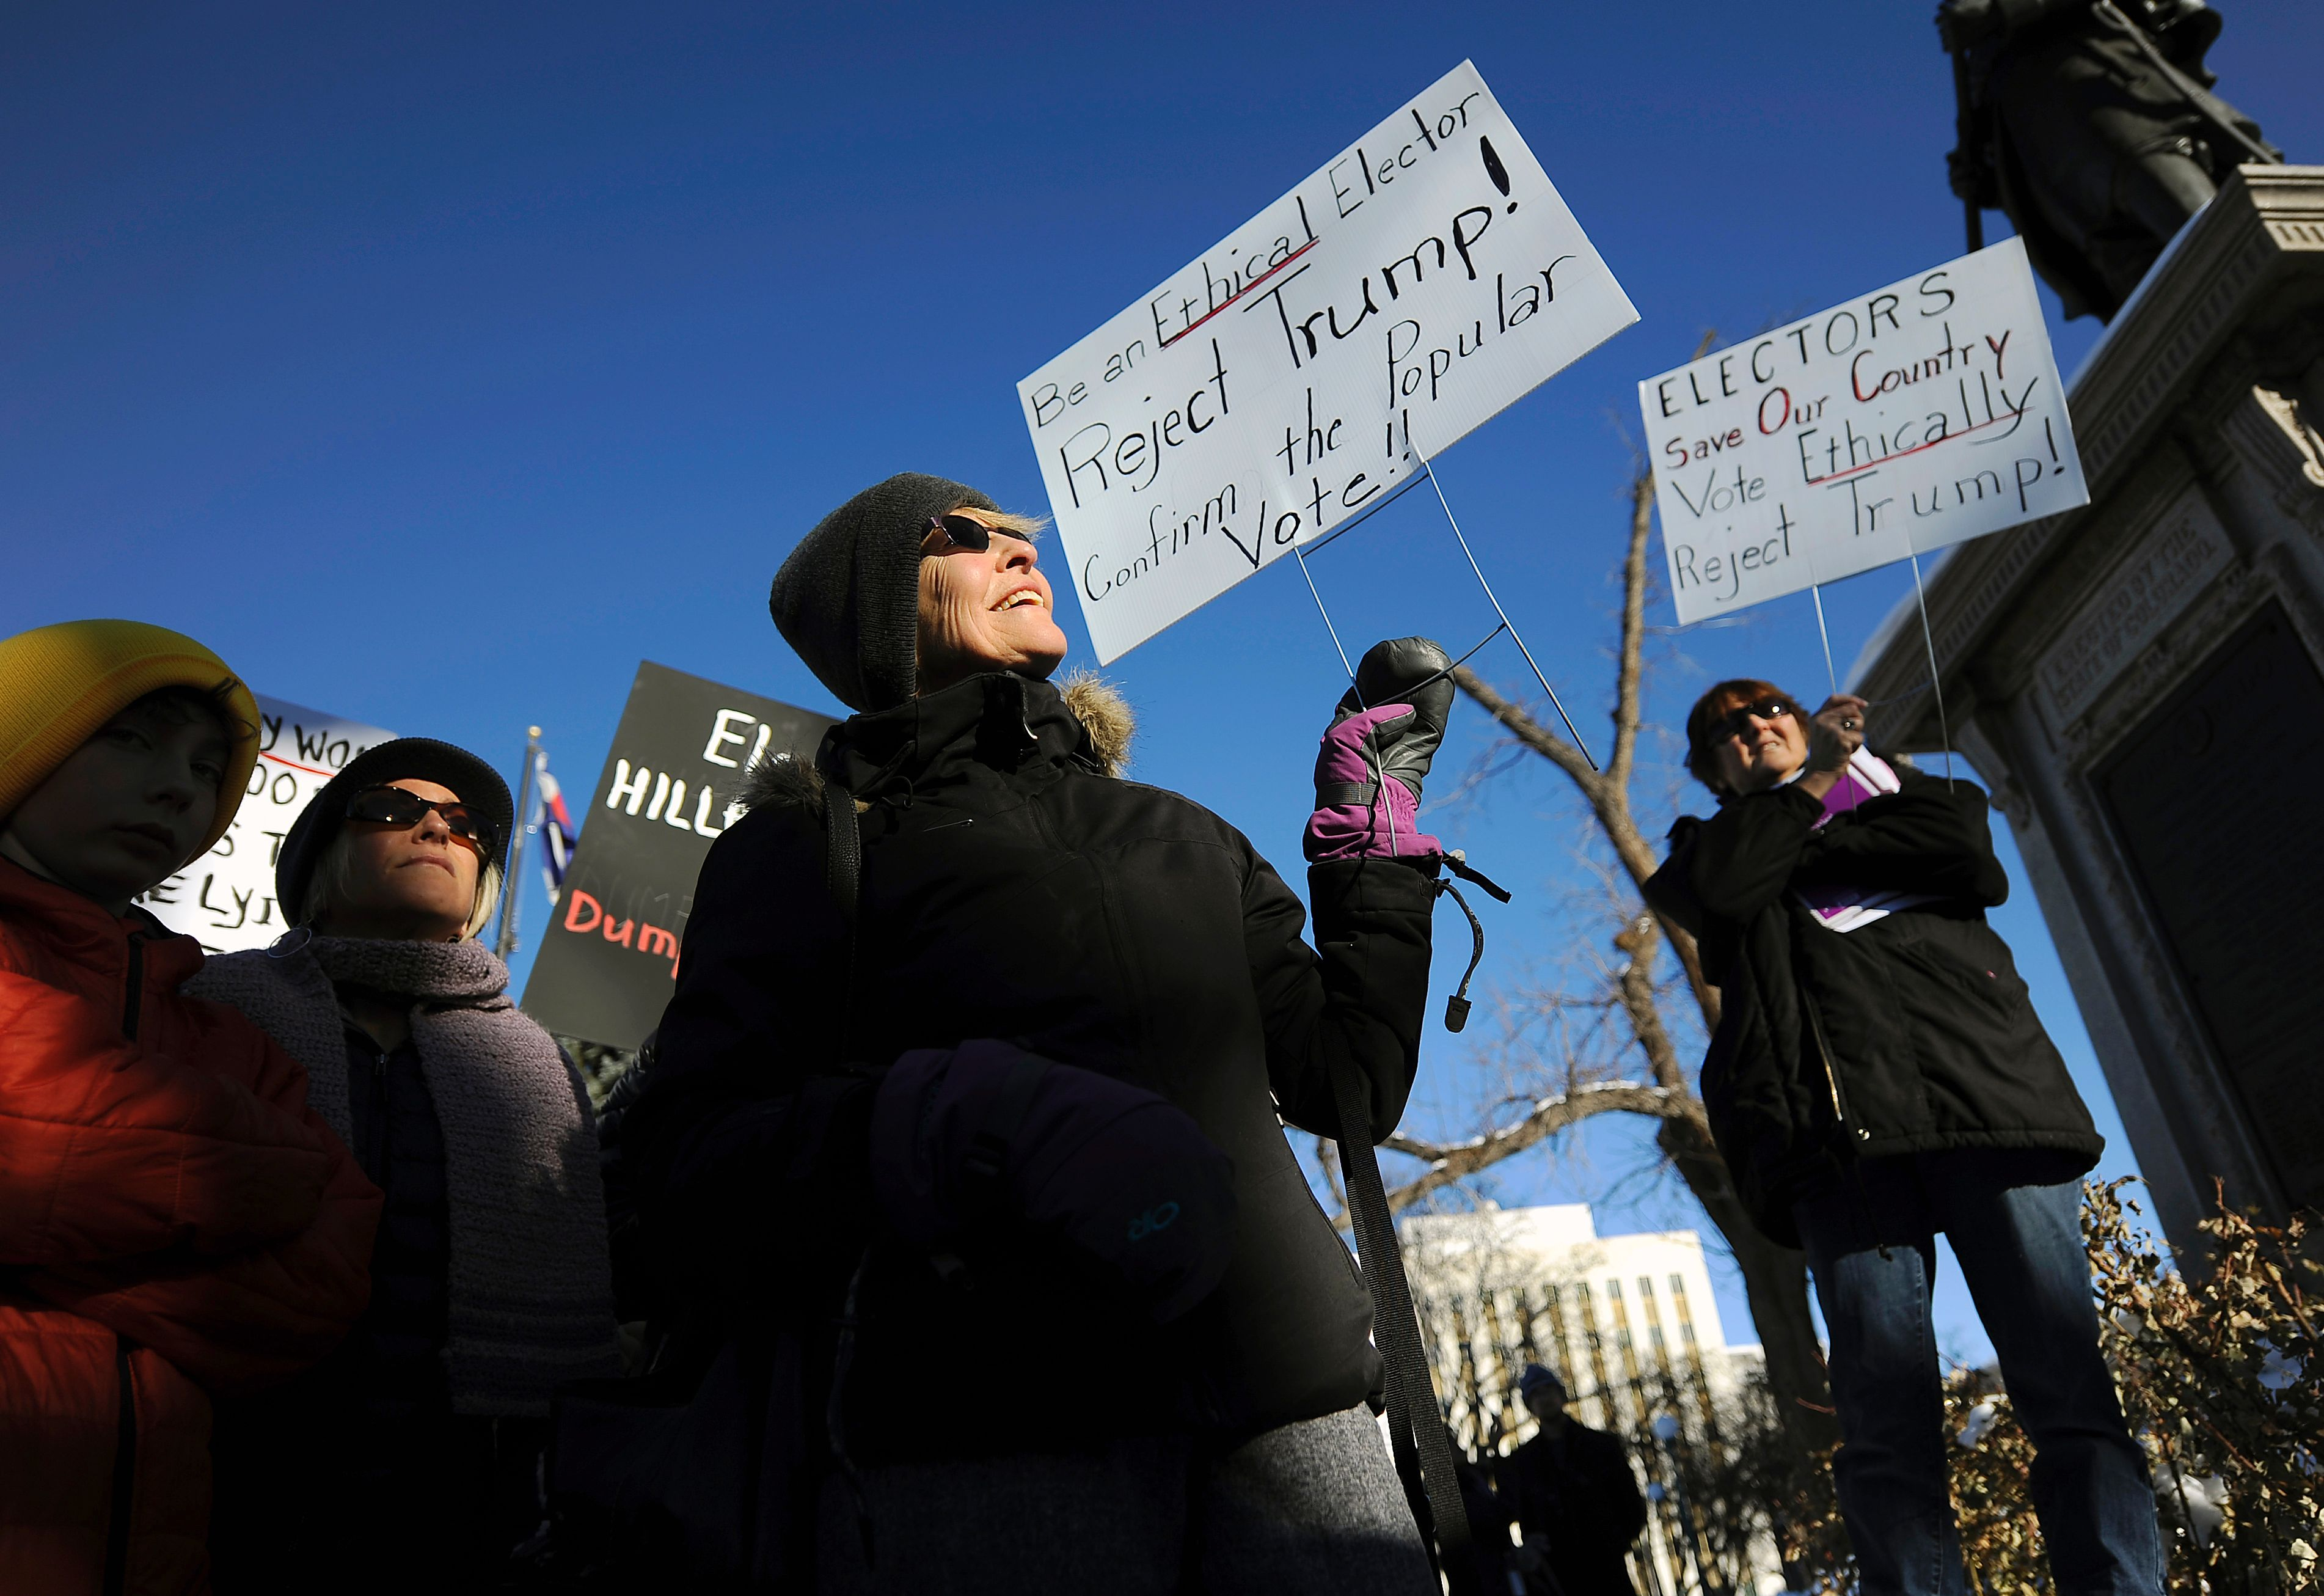 People protest outside the Colorado Capitol building in Denver, Colorado on December 19, 2016 to demonstrate against US President-elect Donald Trump on the day the Electoral College votes to certify the election. Members of America's Electoral College convened across the country Monday to formally anoint Donald Trump as president, with opponents clinging to slim hopes of a revolt that could deny him power. / AFP / Chris Schneider (Photo credit should read CHRIS SCHNEIDER/AFP/Getty Images)